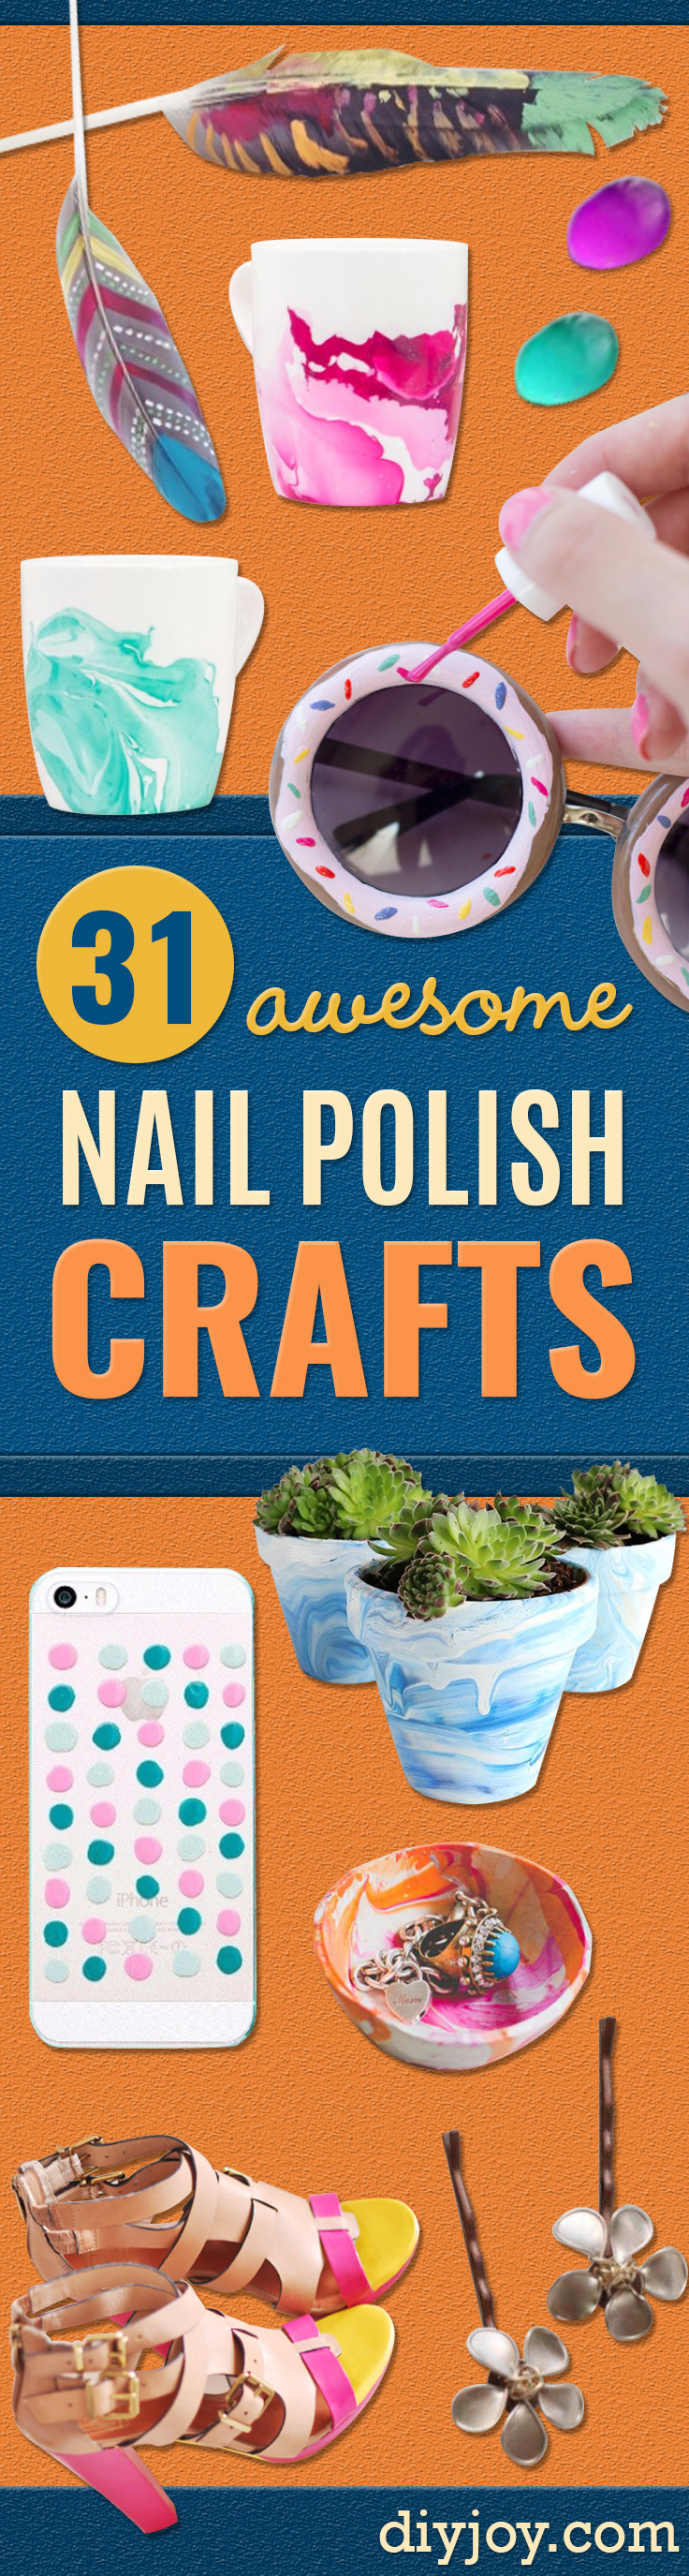 DIY Nail Polish Crafts - Easy and Cheap Craft Ideas for Girls, Teens, Tweens and Adults | Fun and Cool DIY Projects You Can Make With Fingernail Polish - Do It Yourself Wire Flowers, Glue Gun Craft Projects and Jewelry Made From nailpolish - Water Marble Tutorials and How To With Step by Step Instructions